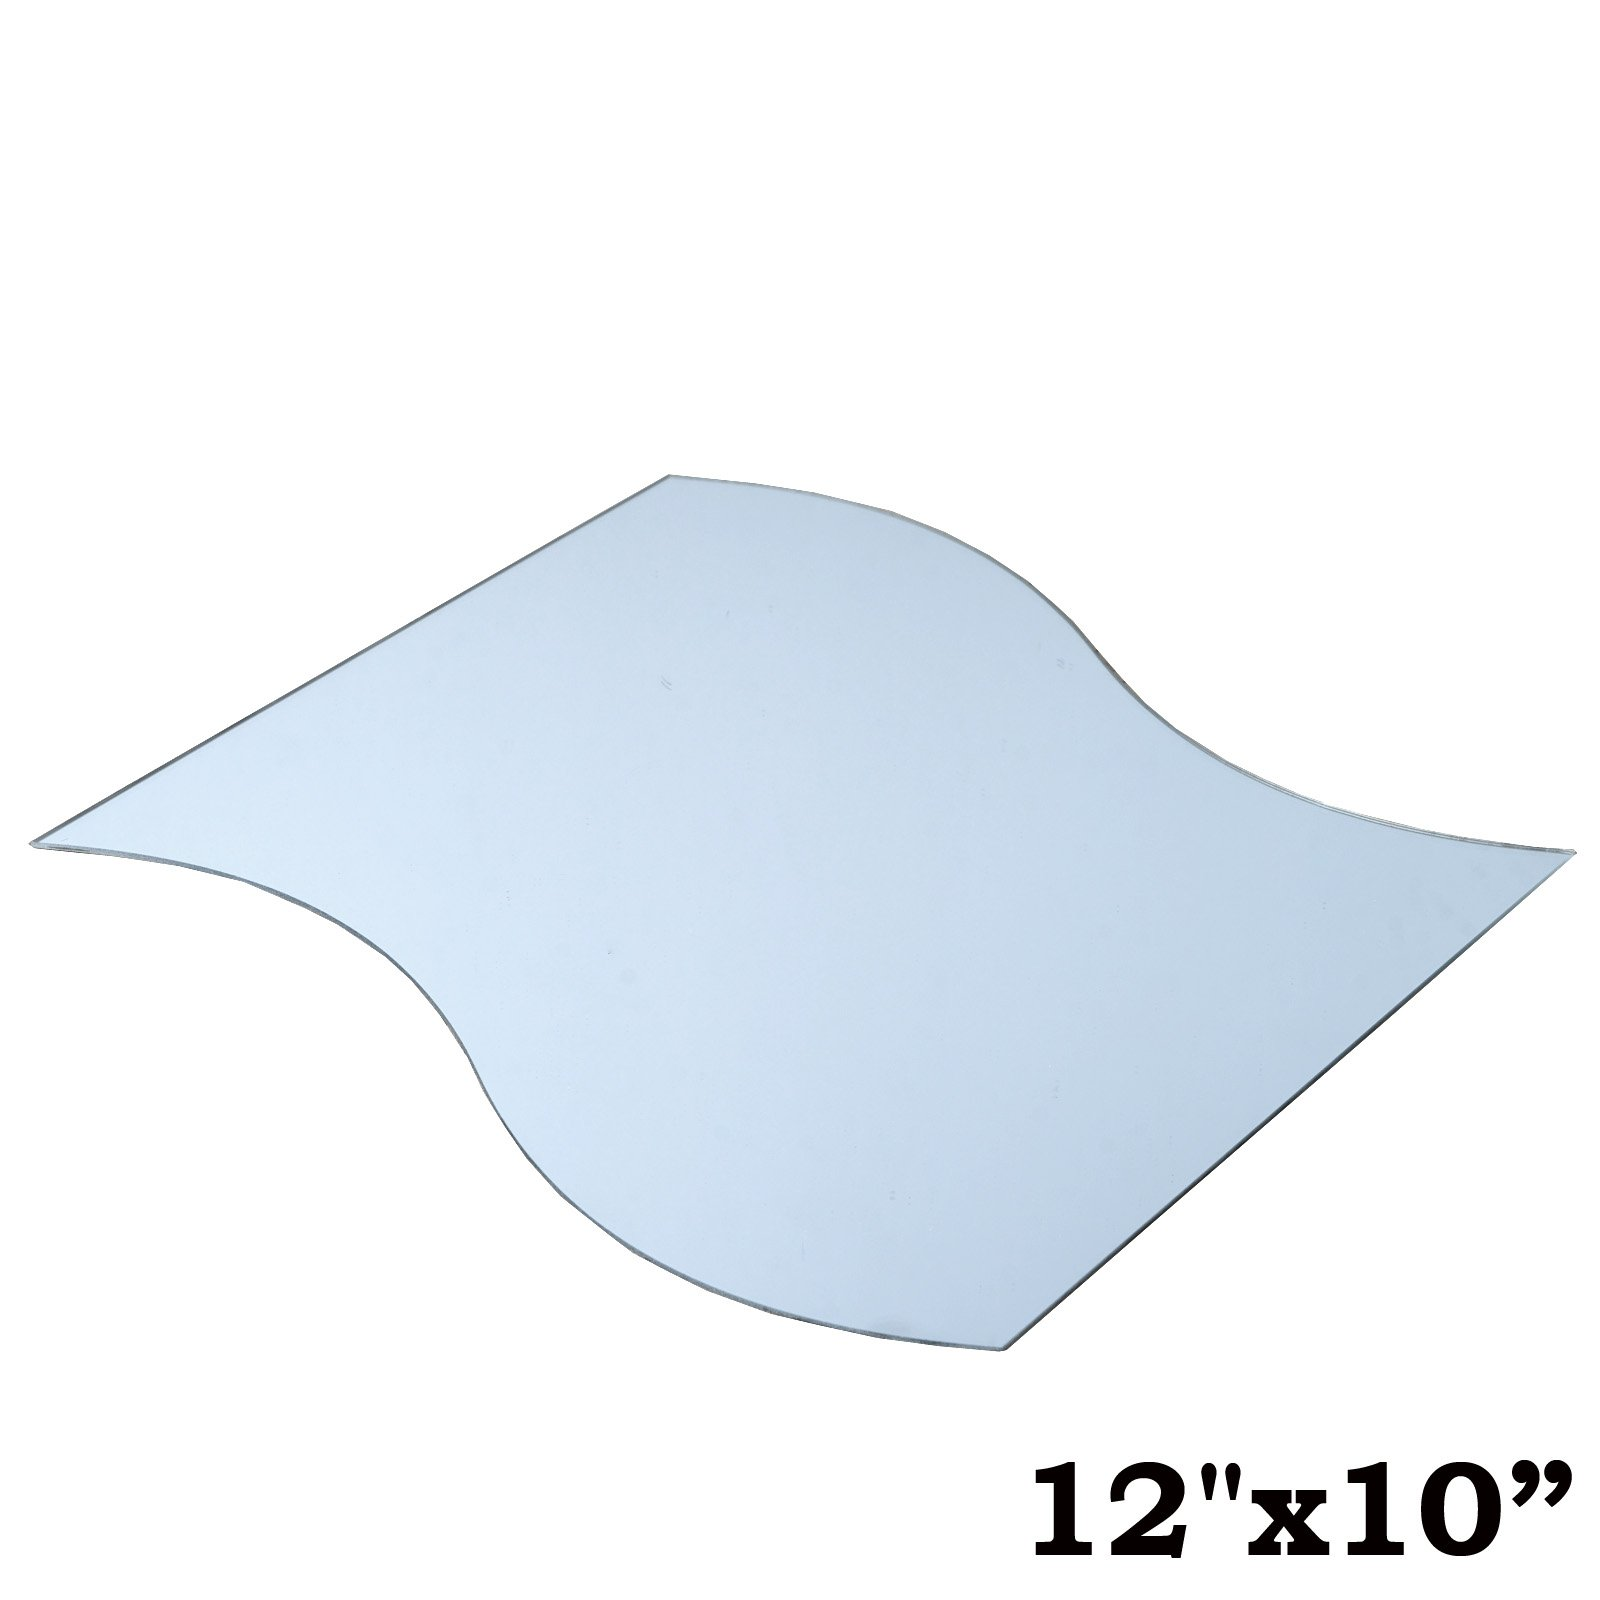 BalsaCircle 12 pcs 12-Inch x 10-Inch Wave Glass Mirrors for Wedding Party Favors Centerpieces Table Decorations Wholesale Supplies